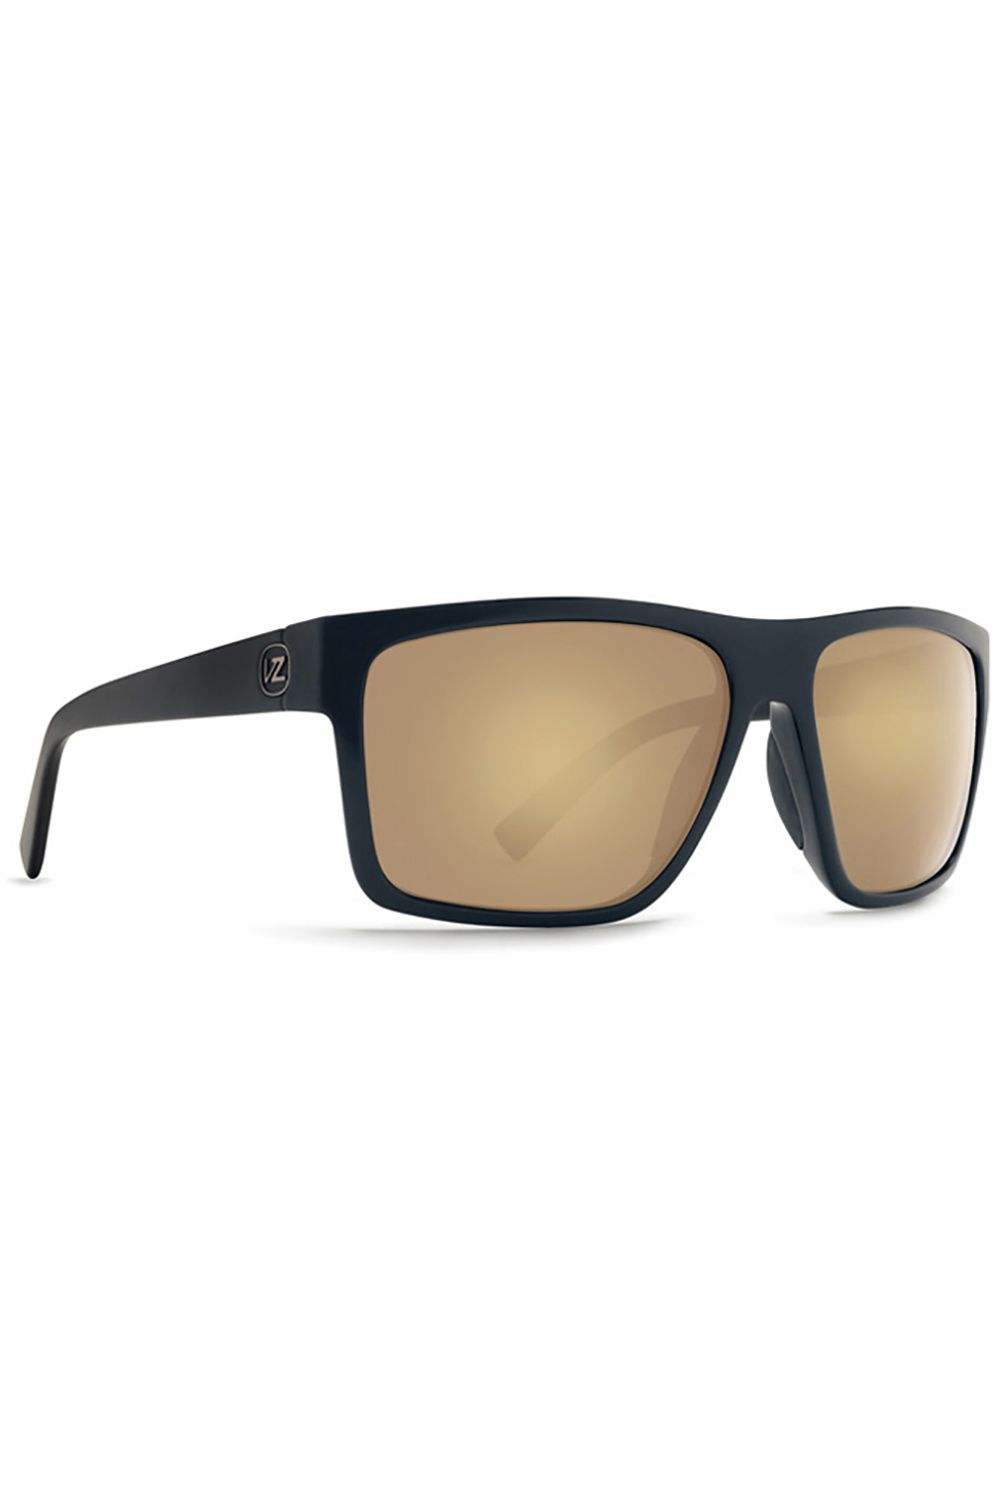 Oculos VonZipper DIPSTICK Black Satin-Gold / Grey